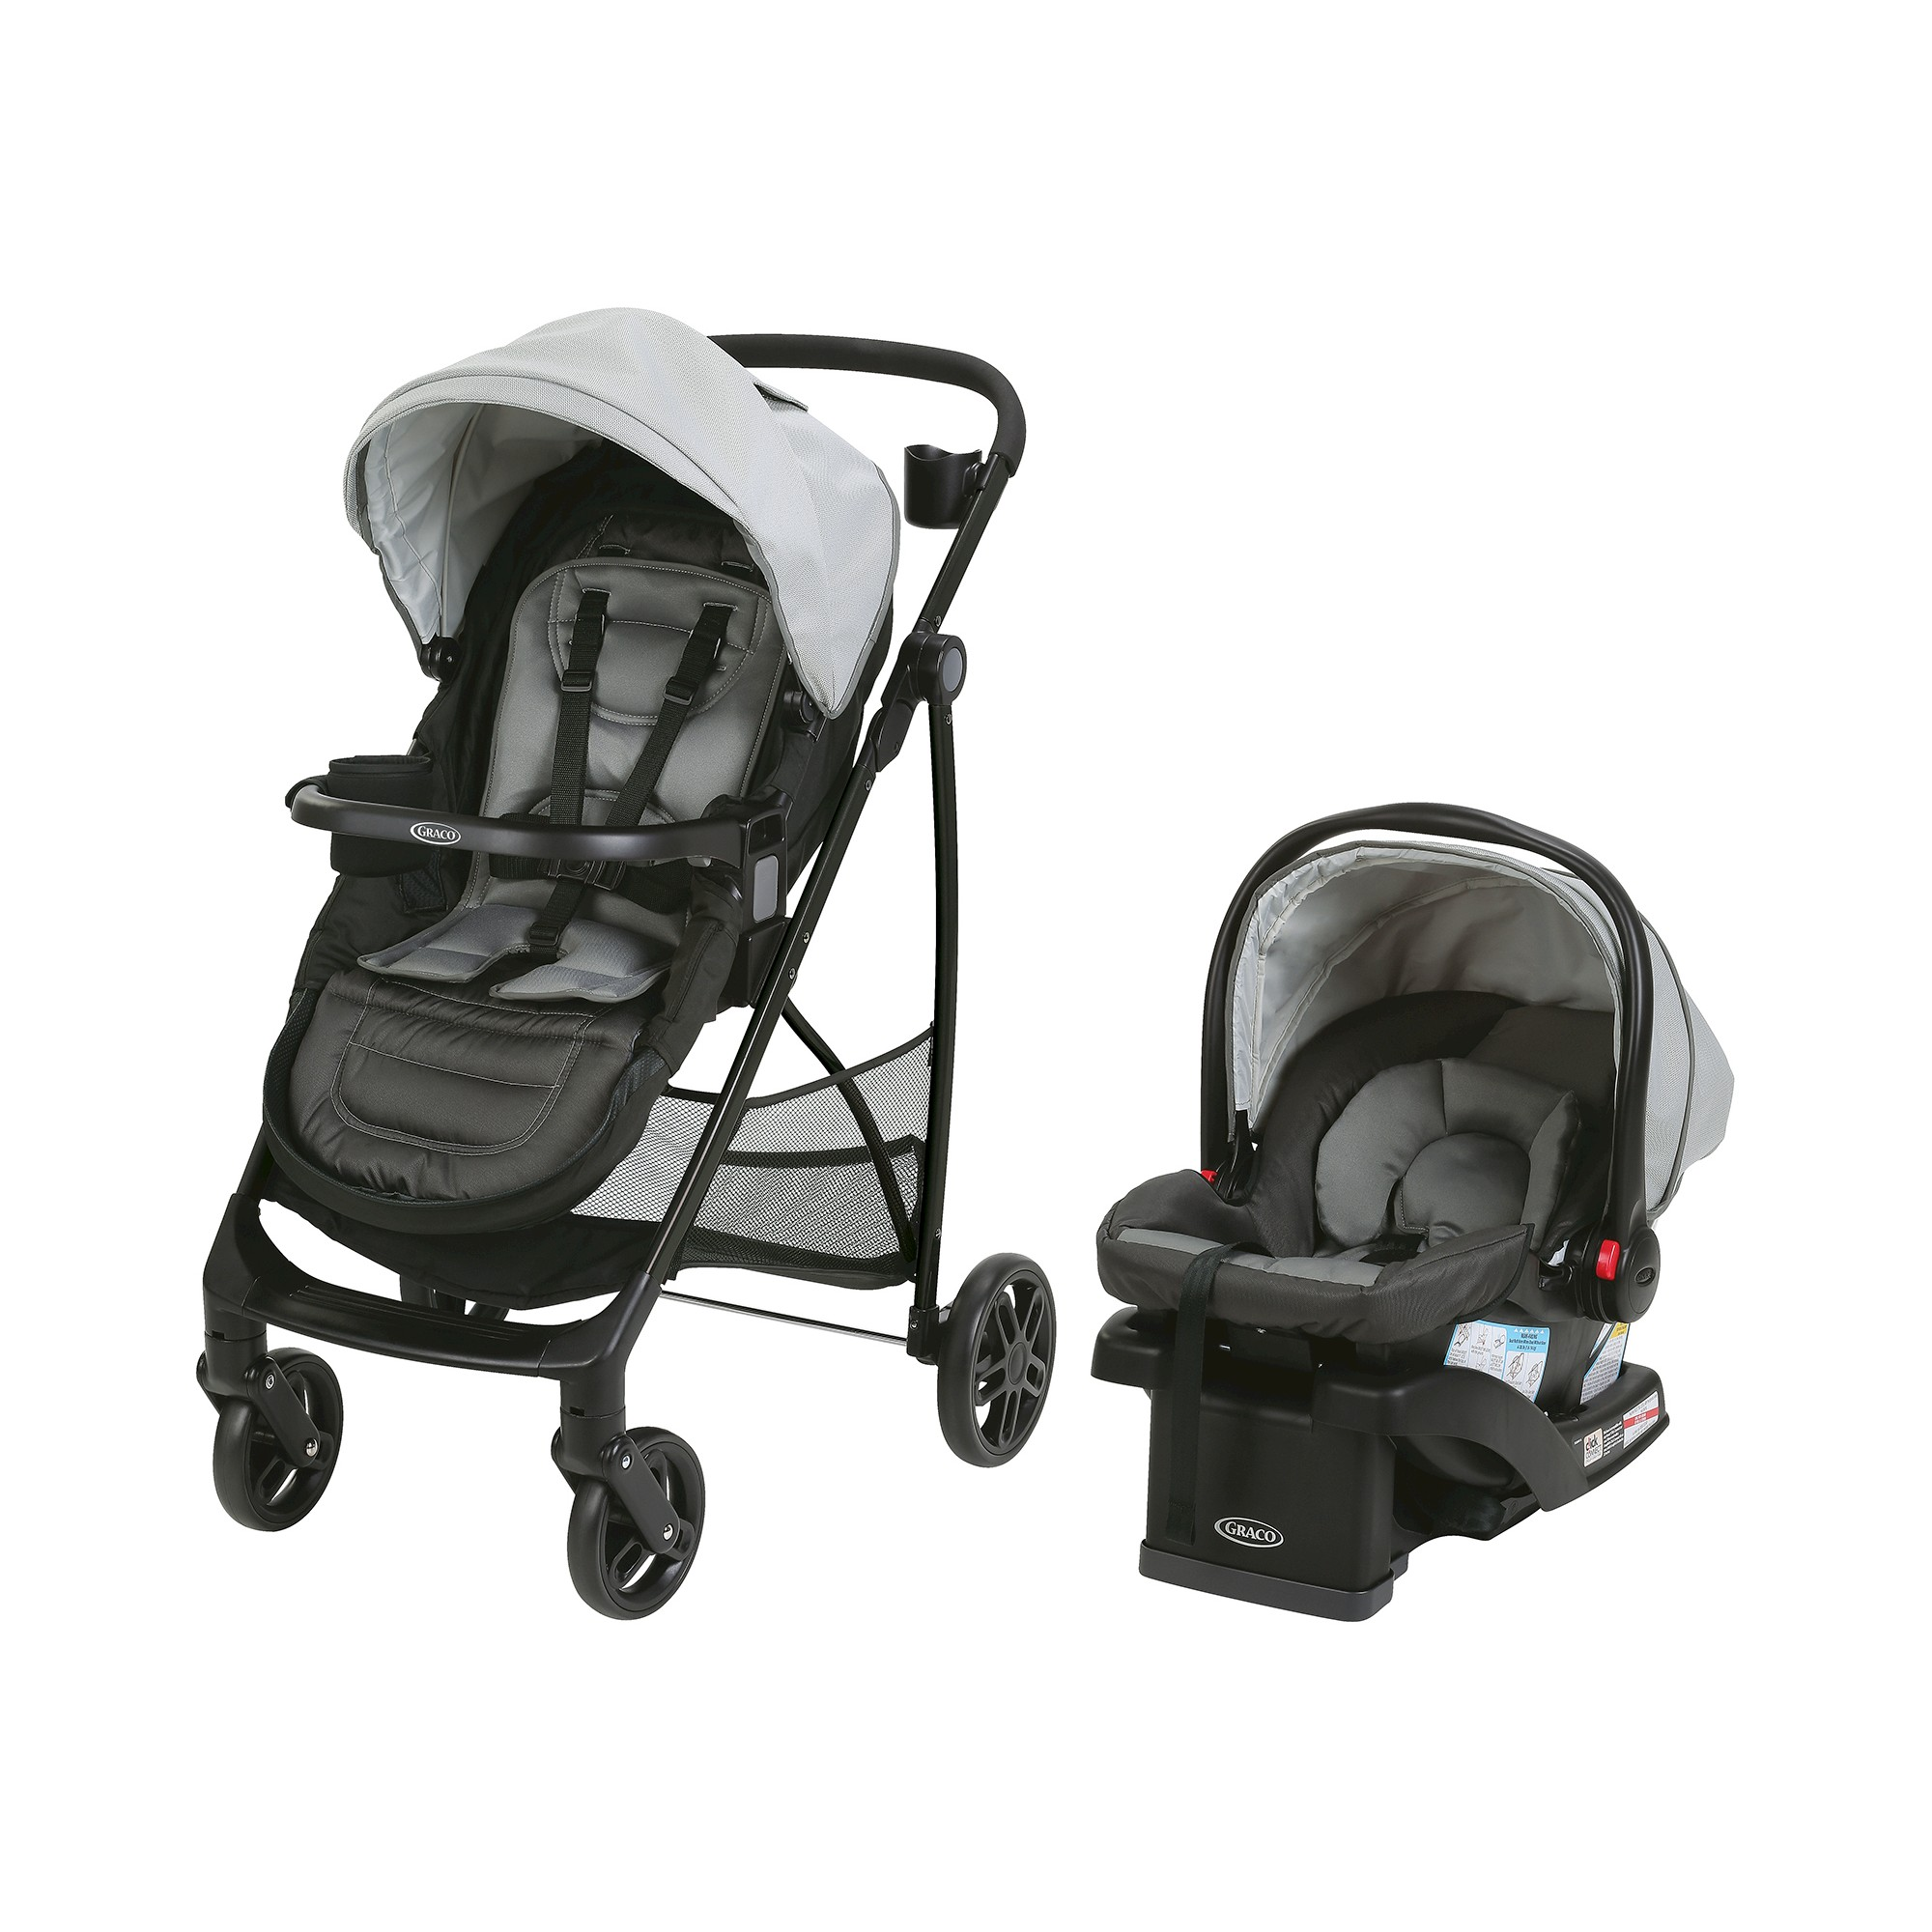 Graco Remix Travel System Sphere Travel system